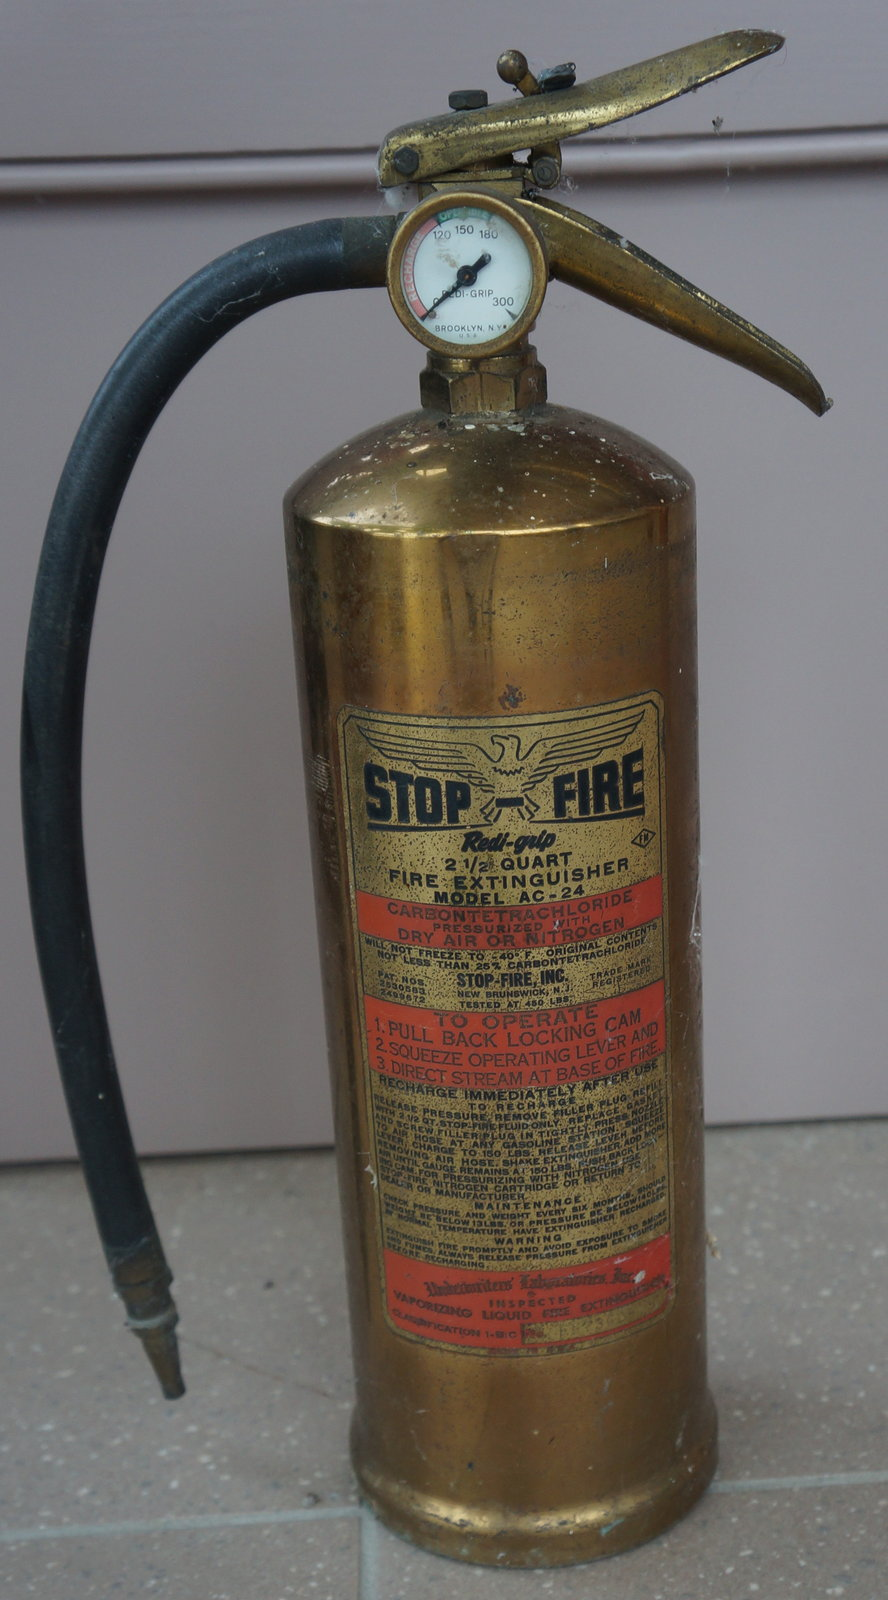 Stop-Fire fire extinguisher